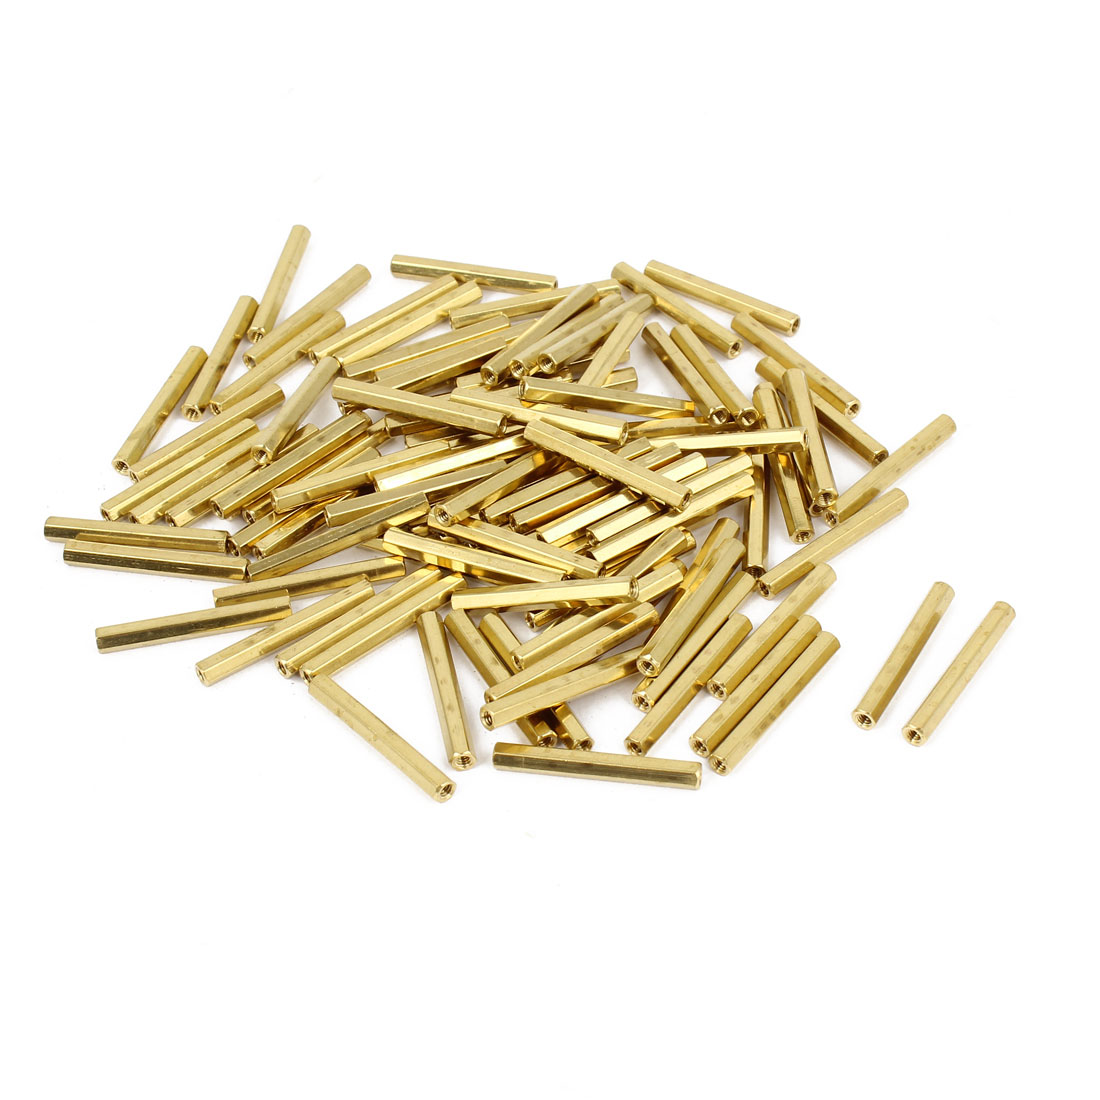 100 Pcs M2 Female Thread Brass Pillar Standoff Hexagonal Spacer 24mm Length